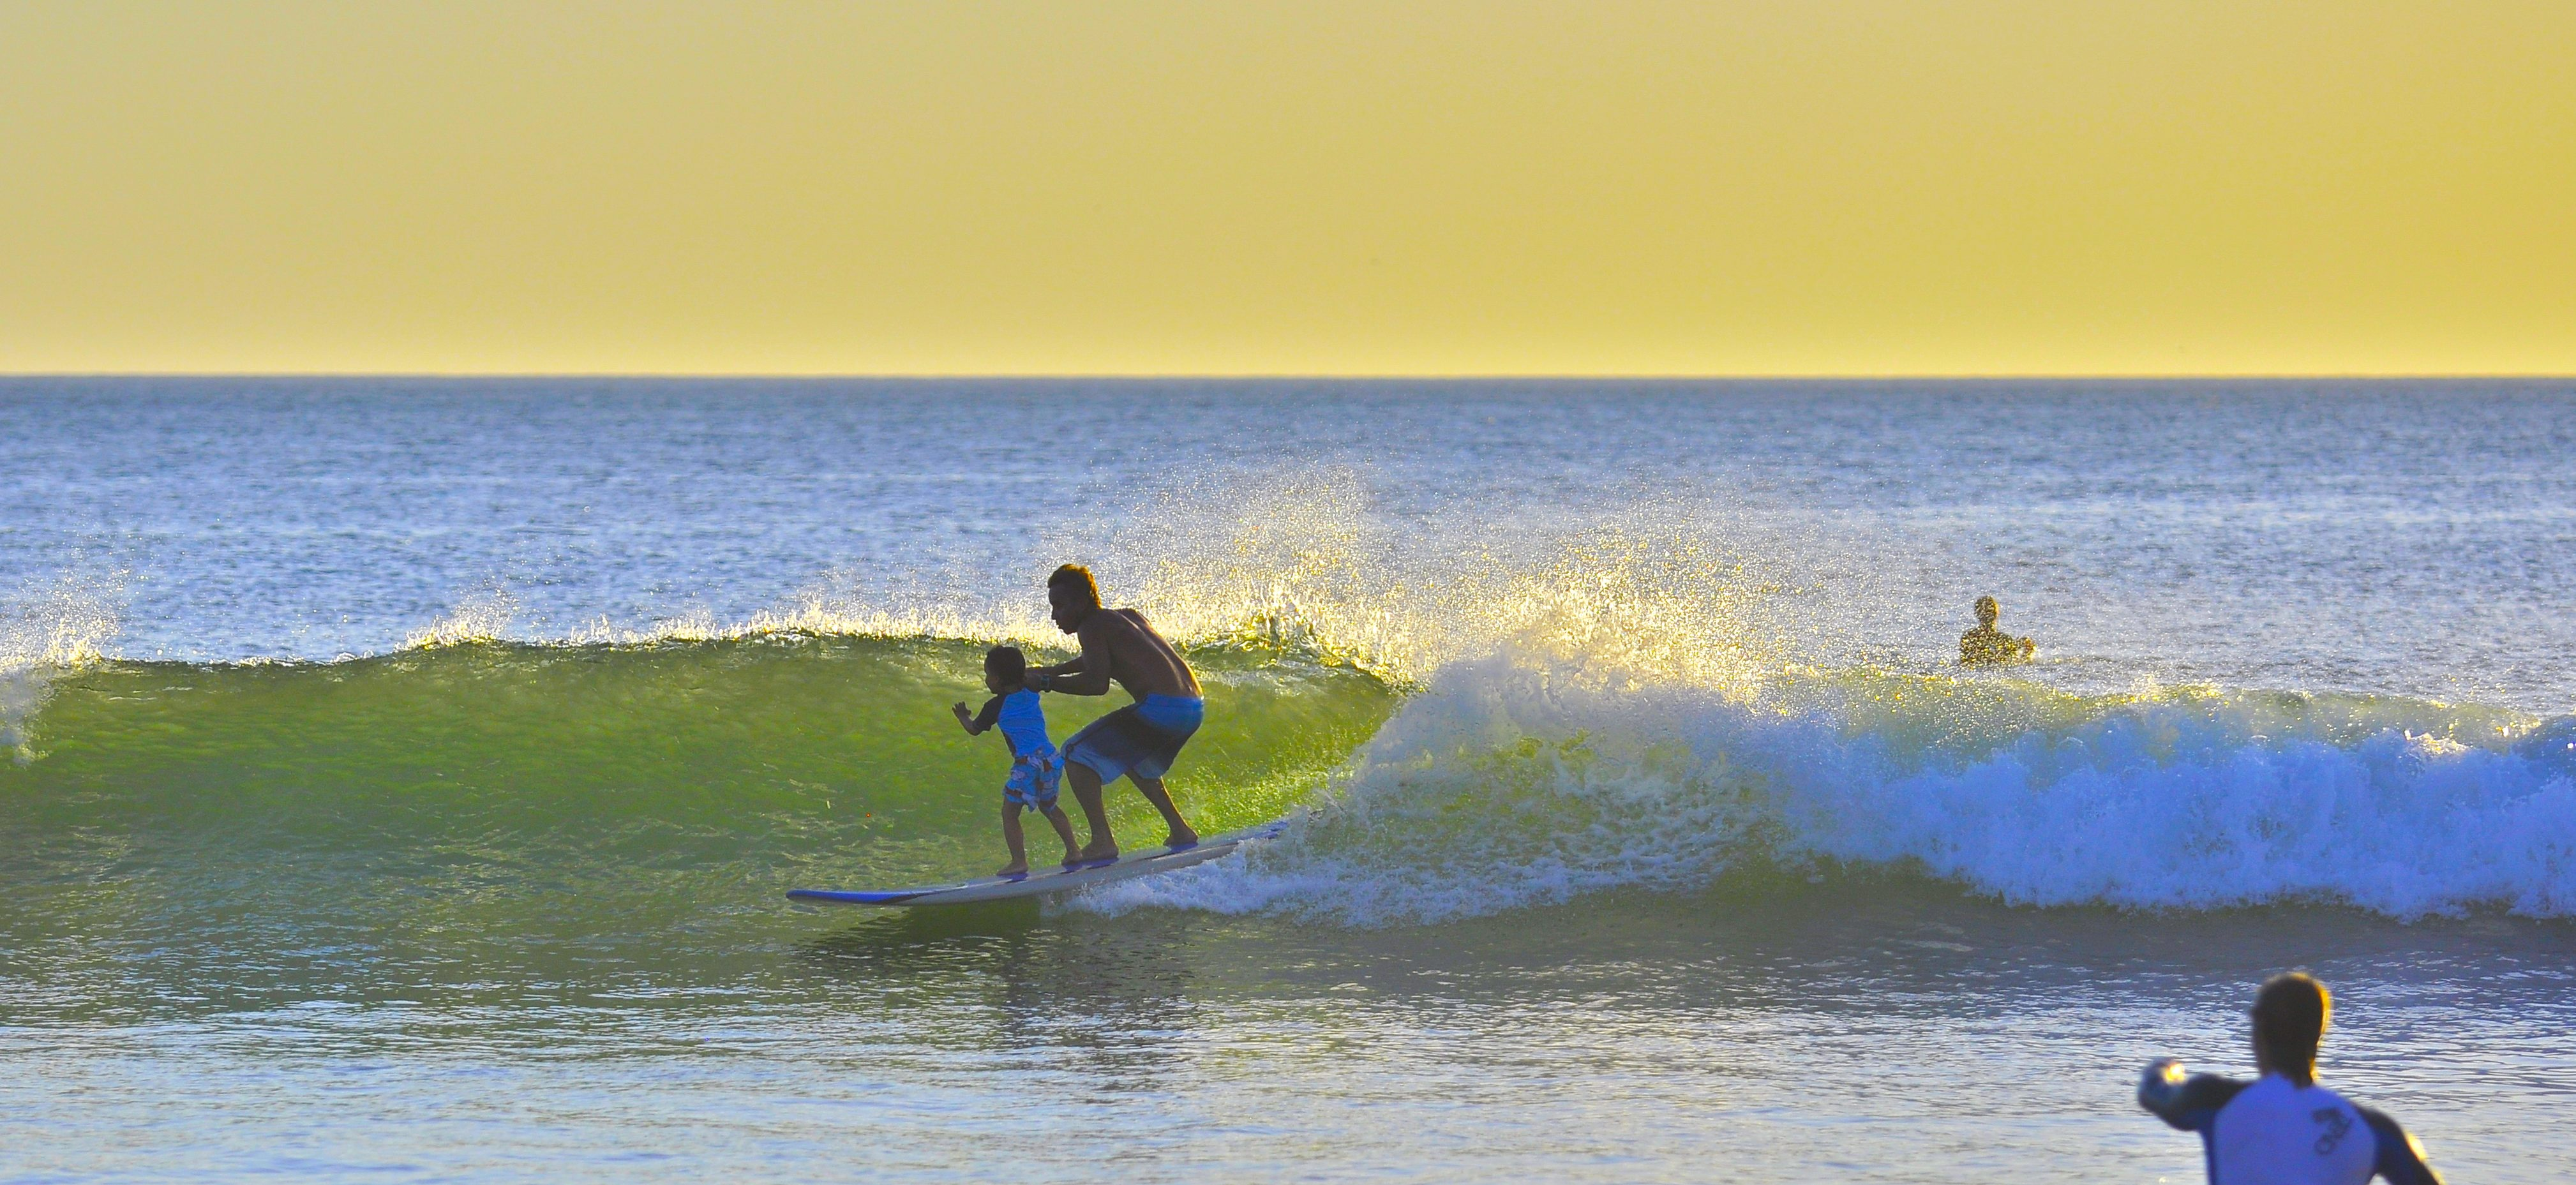 Surf Lessons In Playa Grande Costa Rica By Frijoles Locos